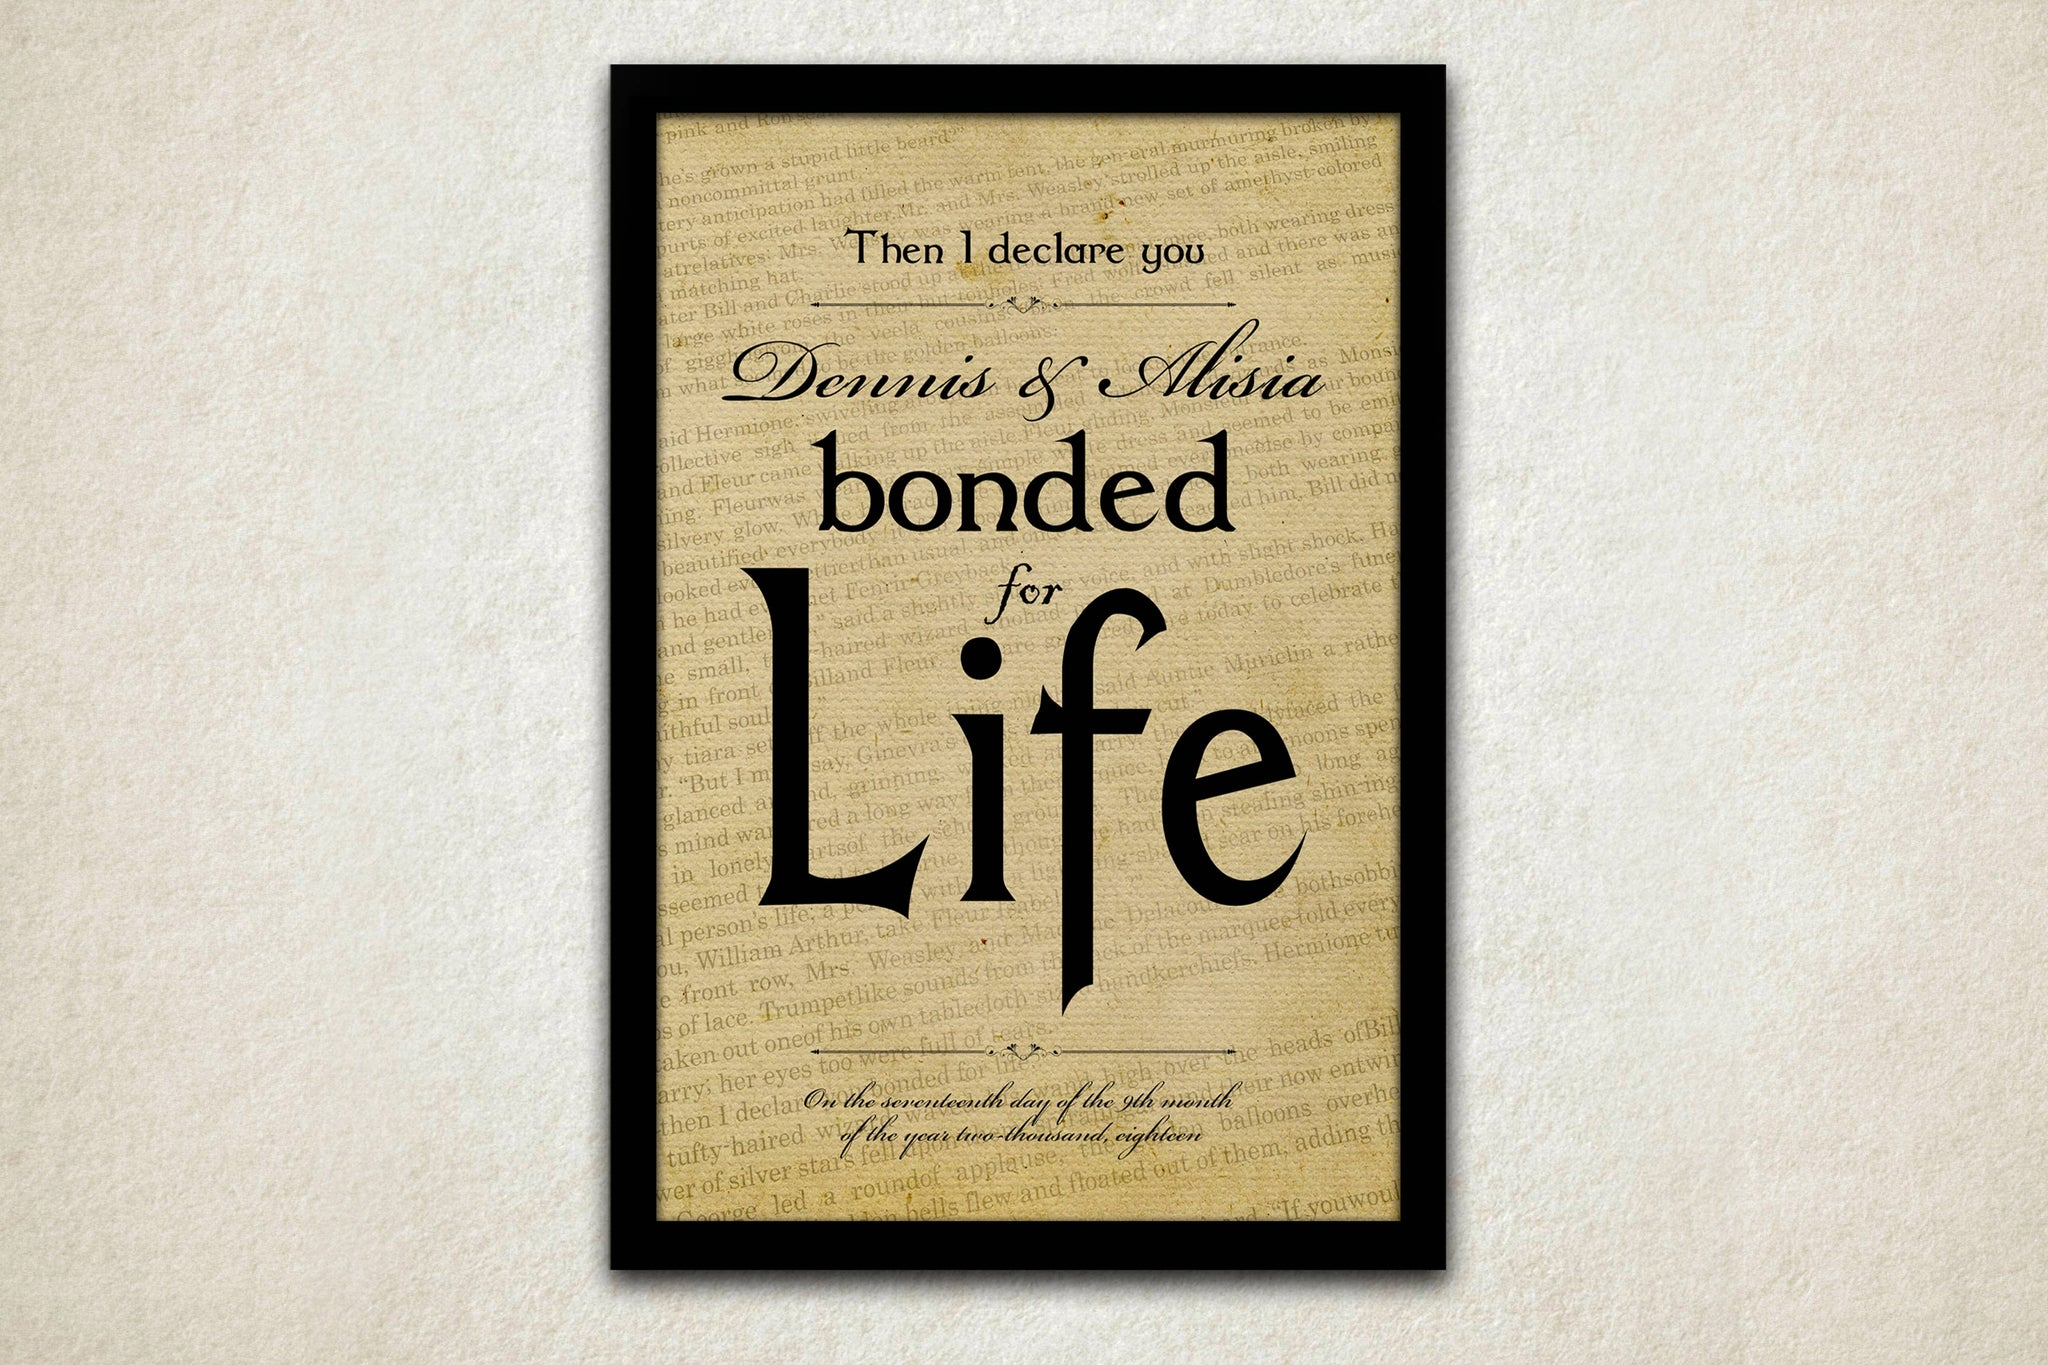 Romantic Art Print: Then I Declare you Bonded for Life - Hunnycomb Proverbs - Wedding gift ideas - paper anniversary gifts